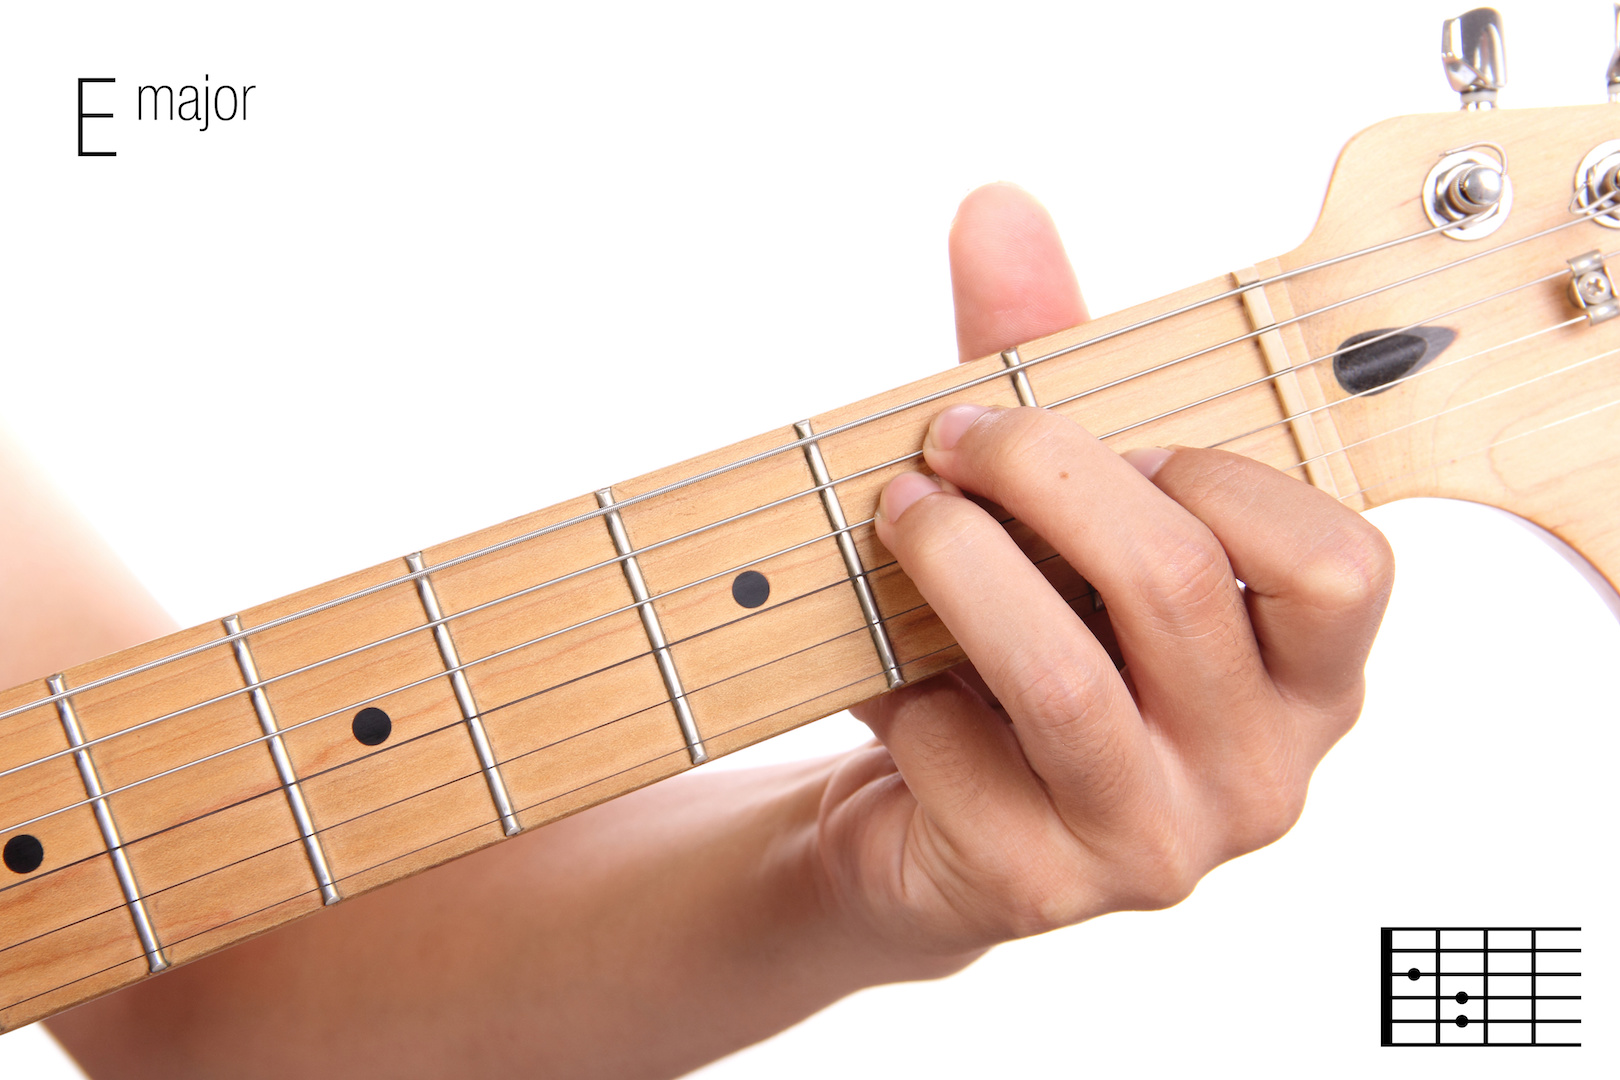 E Chord on Guitar Chord Shapes, Major Scale & Songs in the Key of E